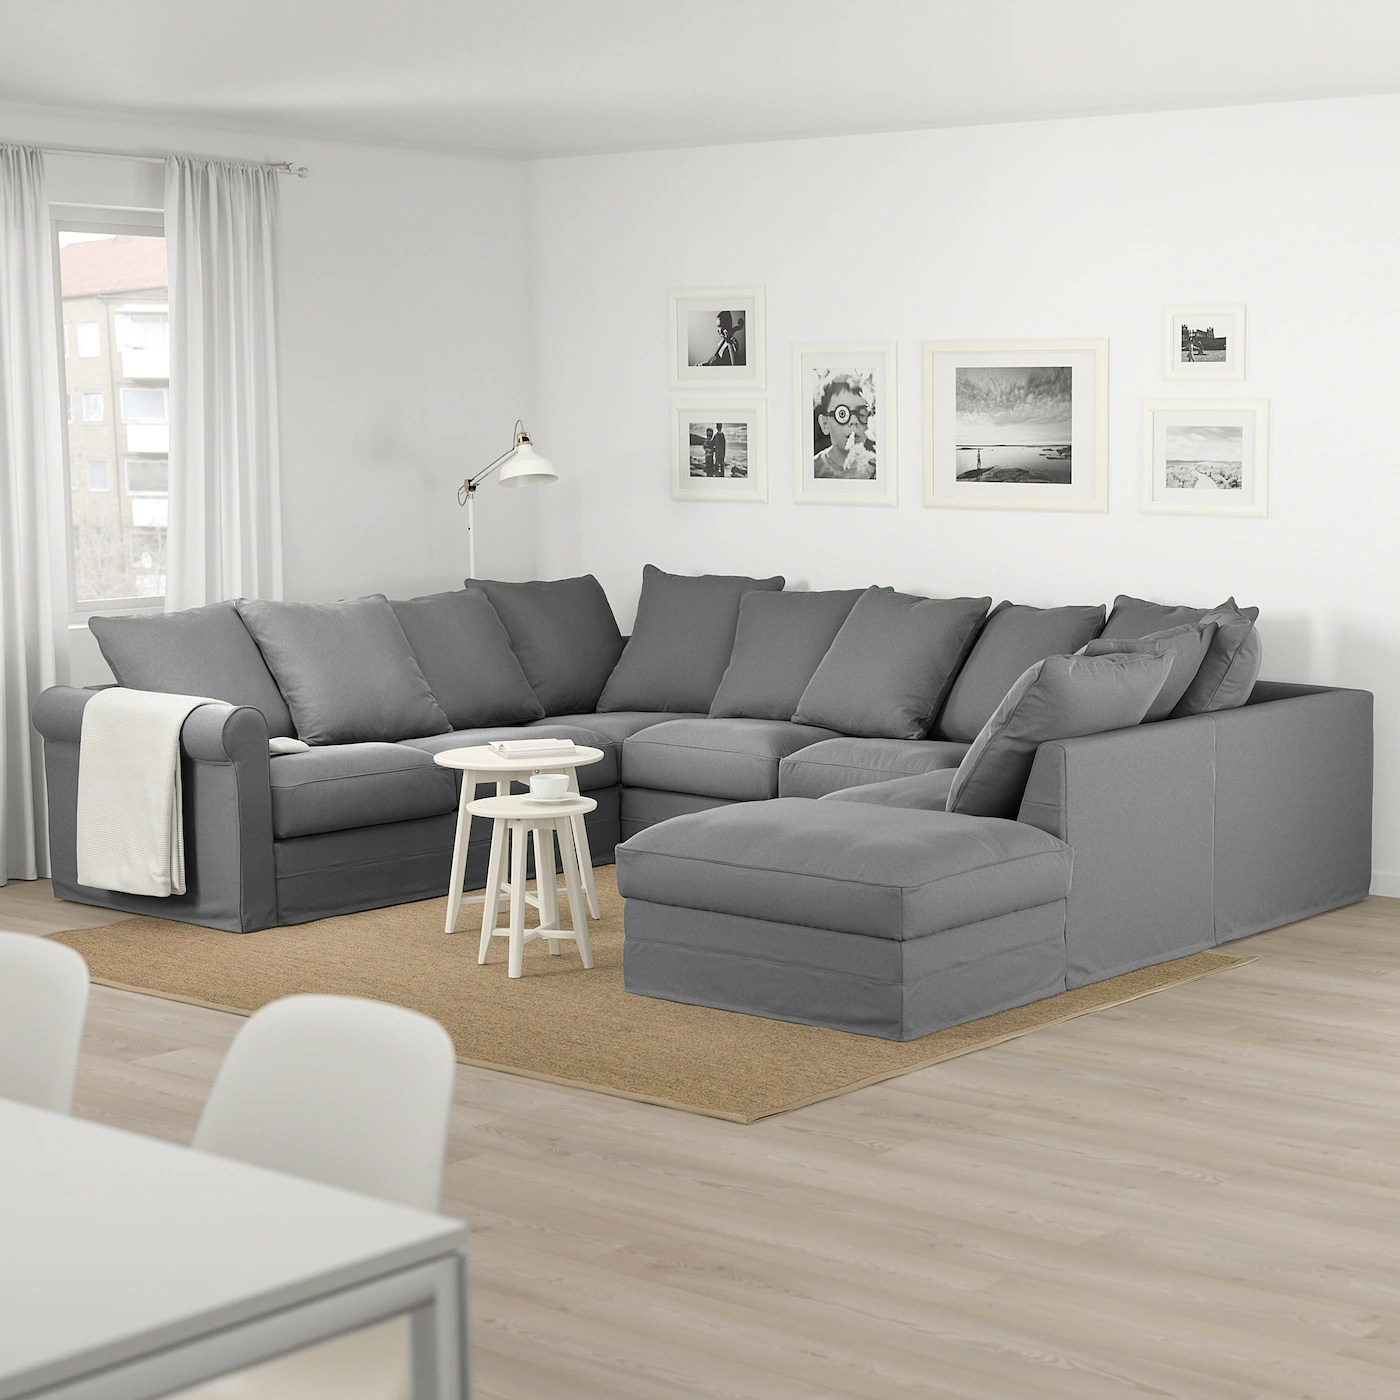 U Couch GrÖnlid U-shaped Sofa, 6 Seat - With Open End, Ljungen ...